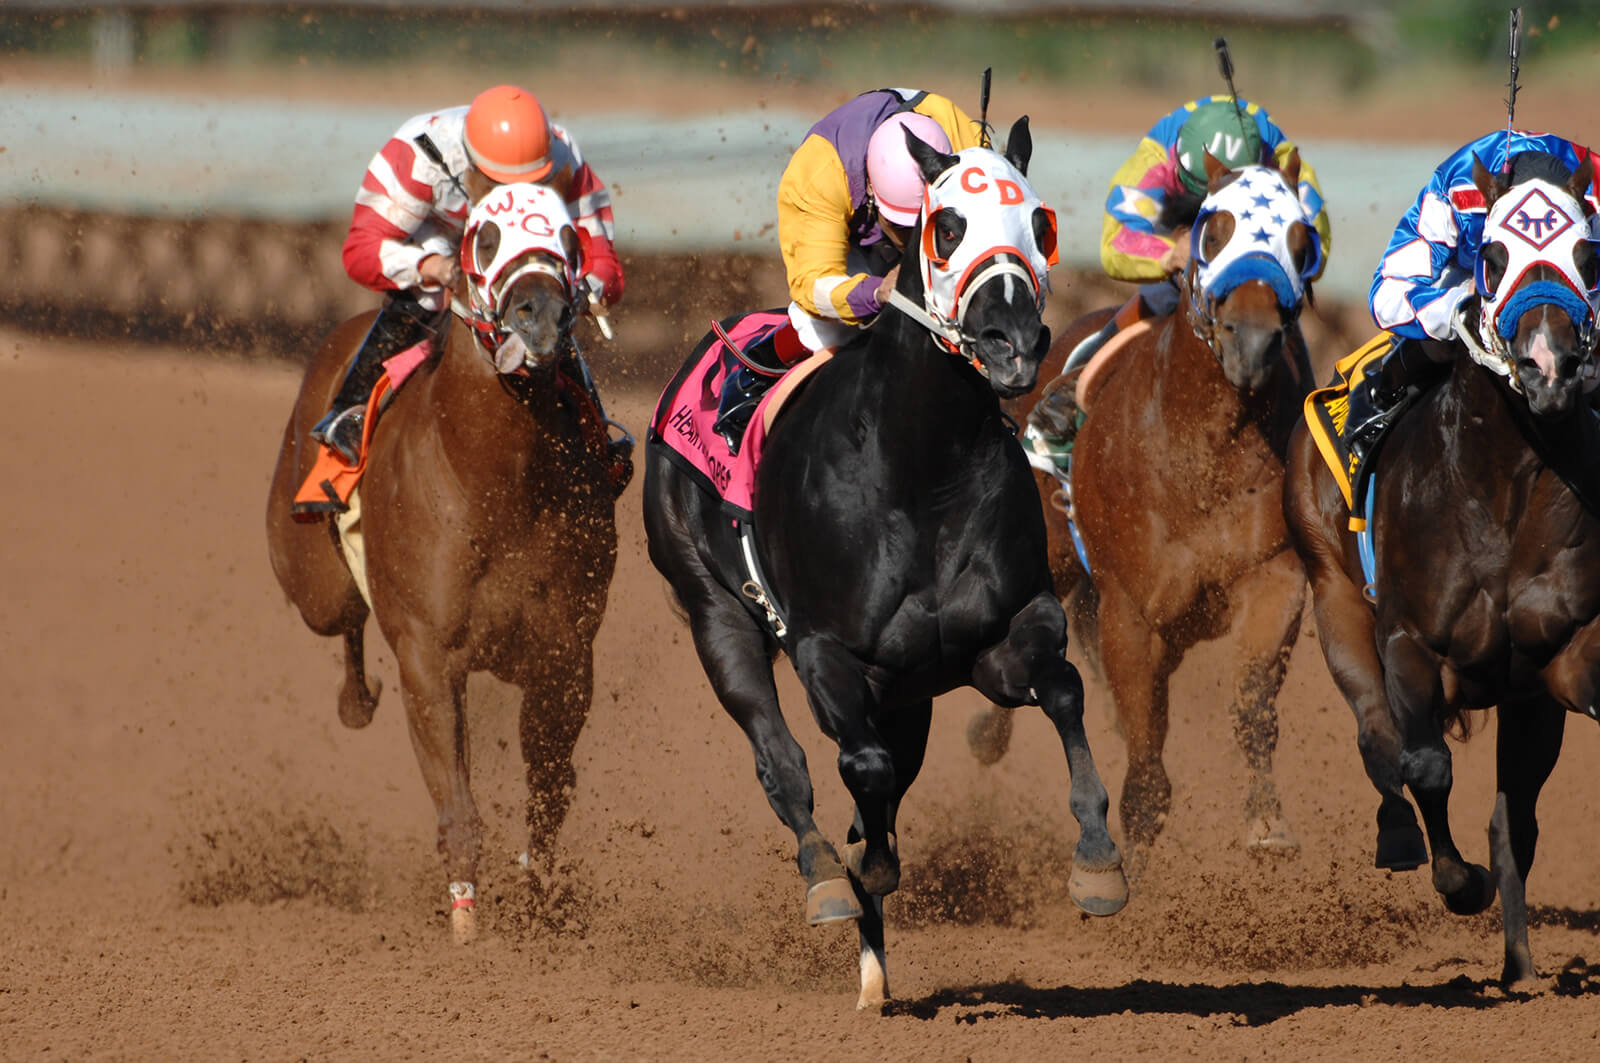 Horse racing at Ruidoso Downs in New Mexico